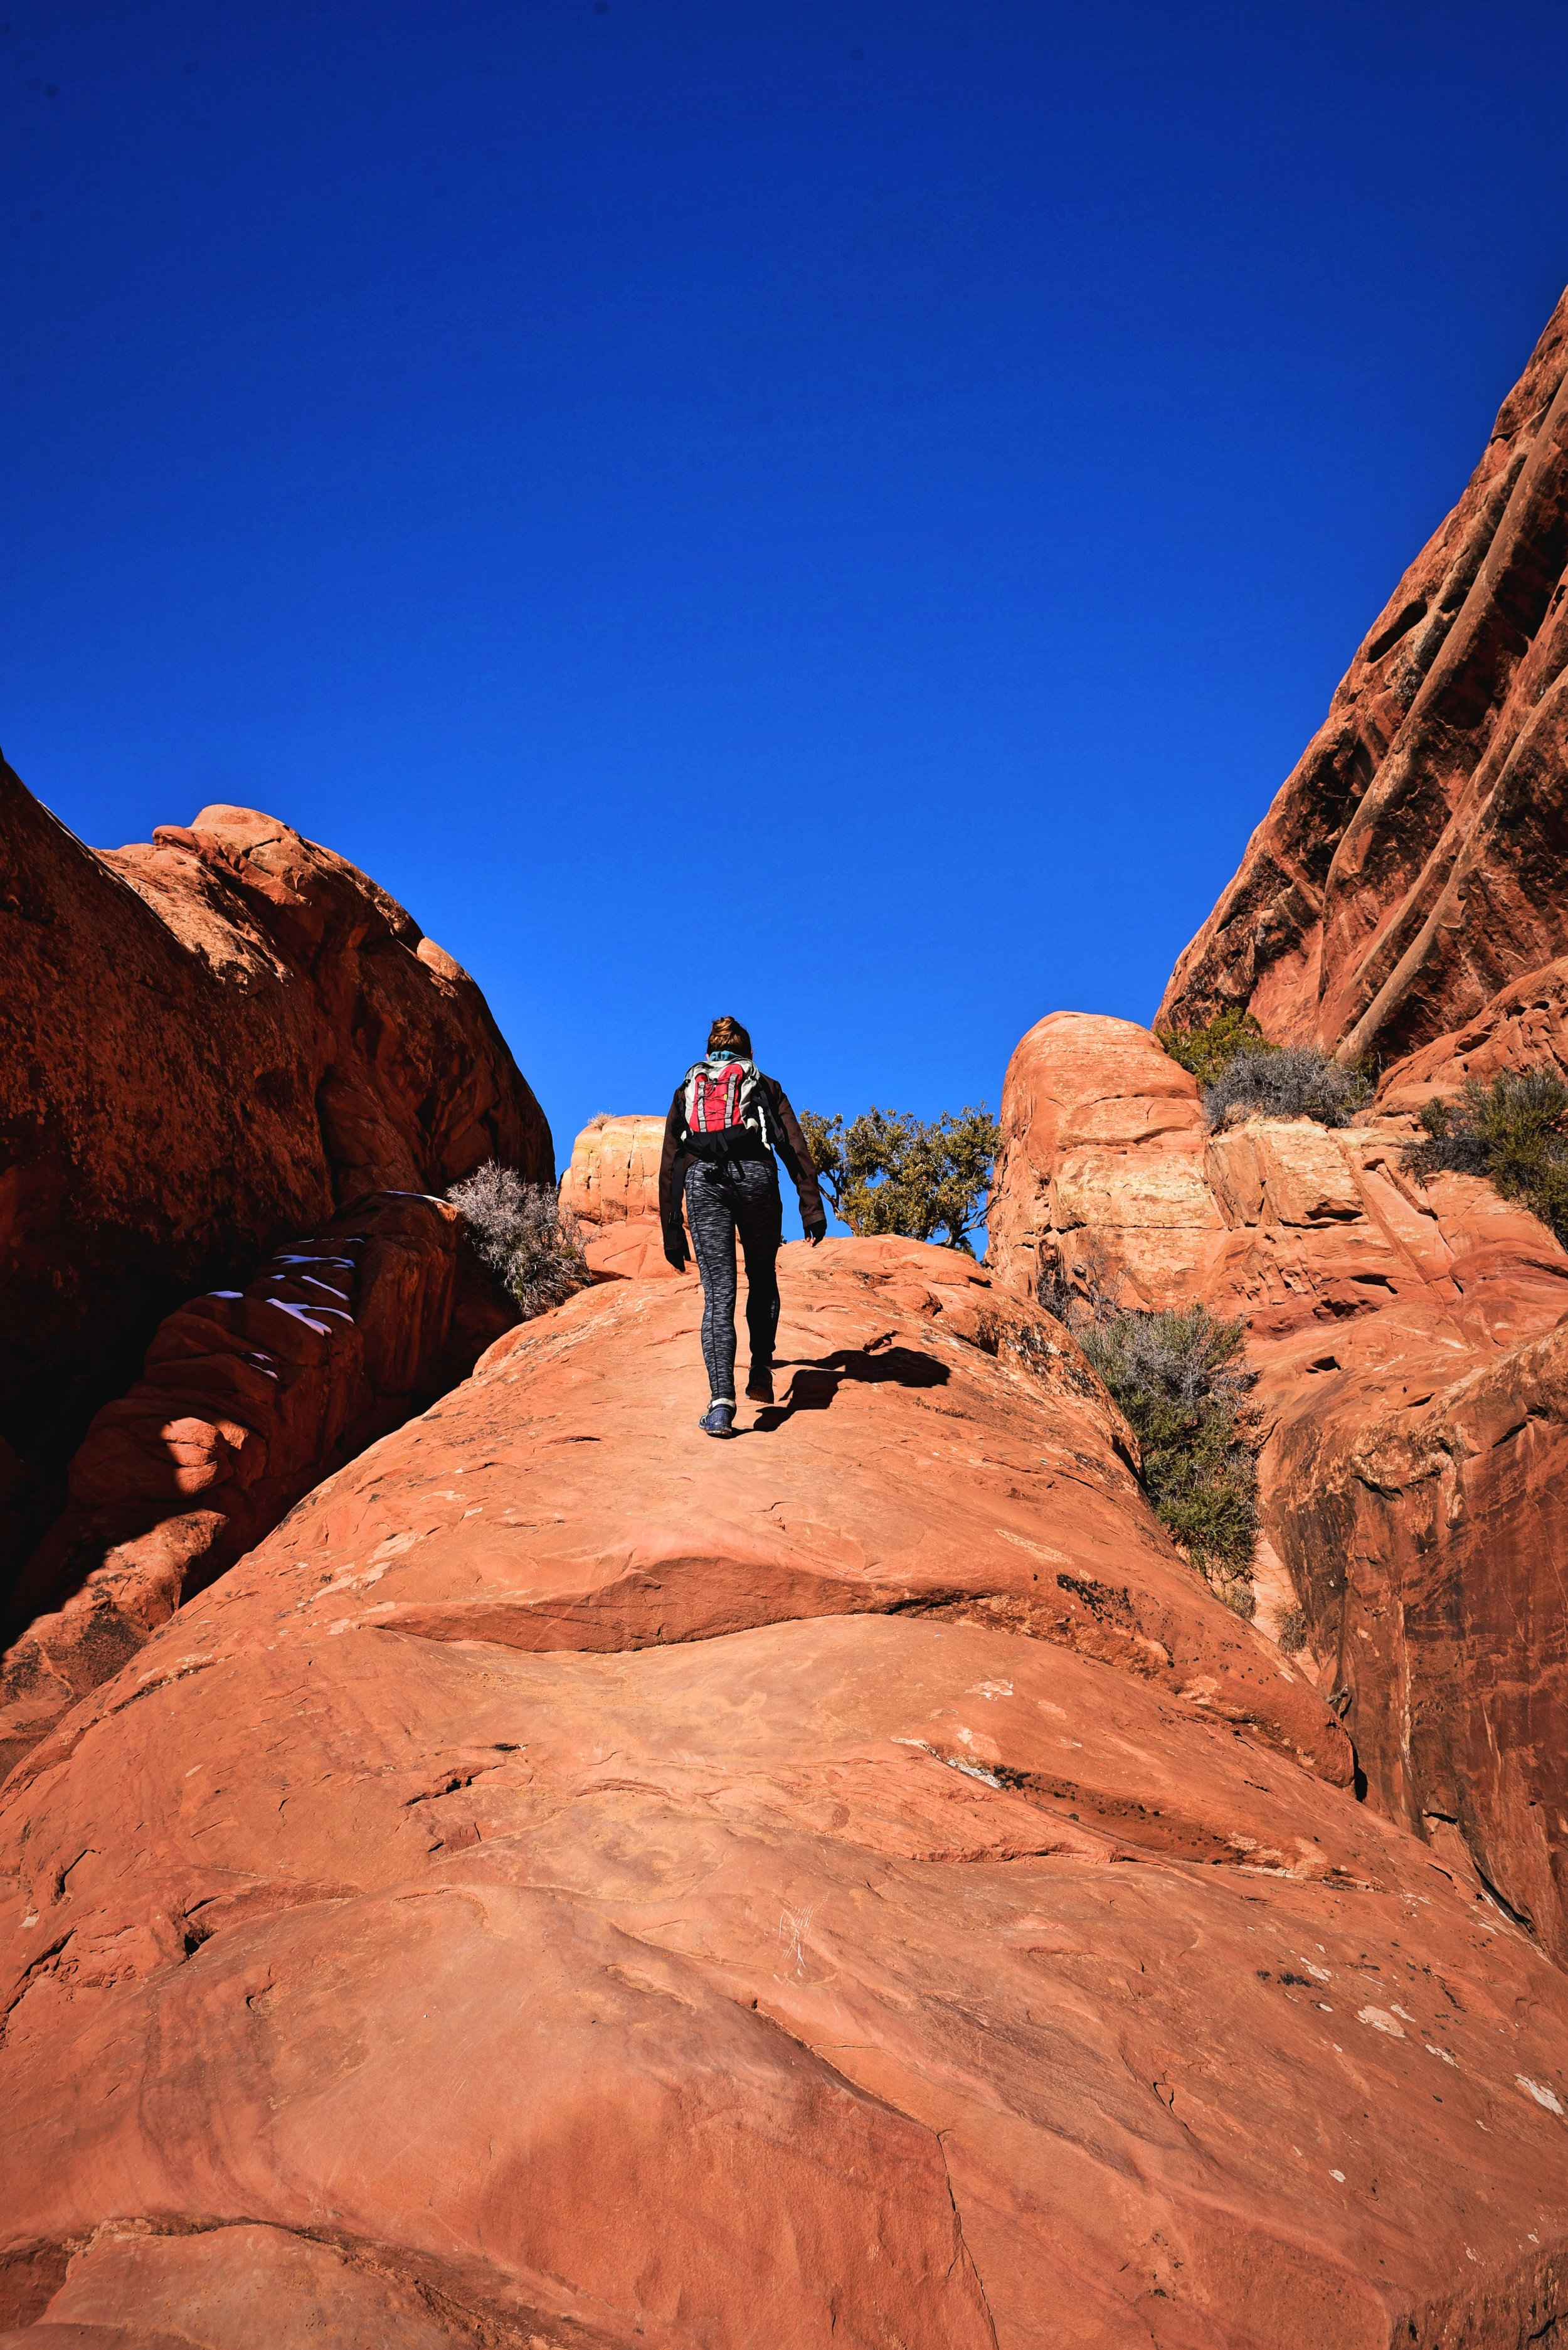 Even without the seven arches, Devils Garden is amazing on its own.